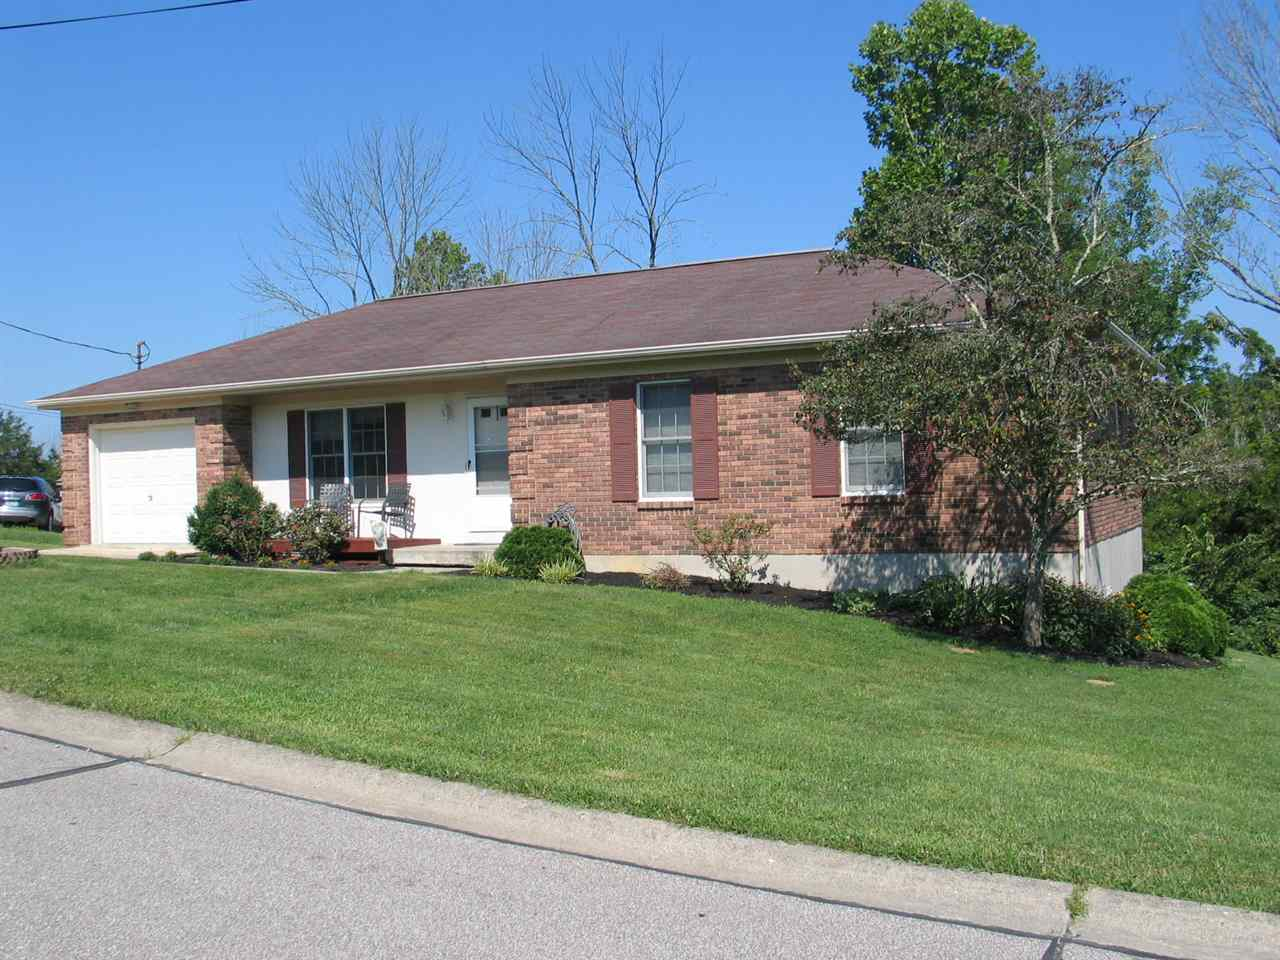 Photo 1 for 11634 Crestview Dr Alexandria, KY 41001